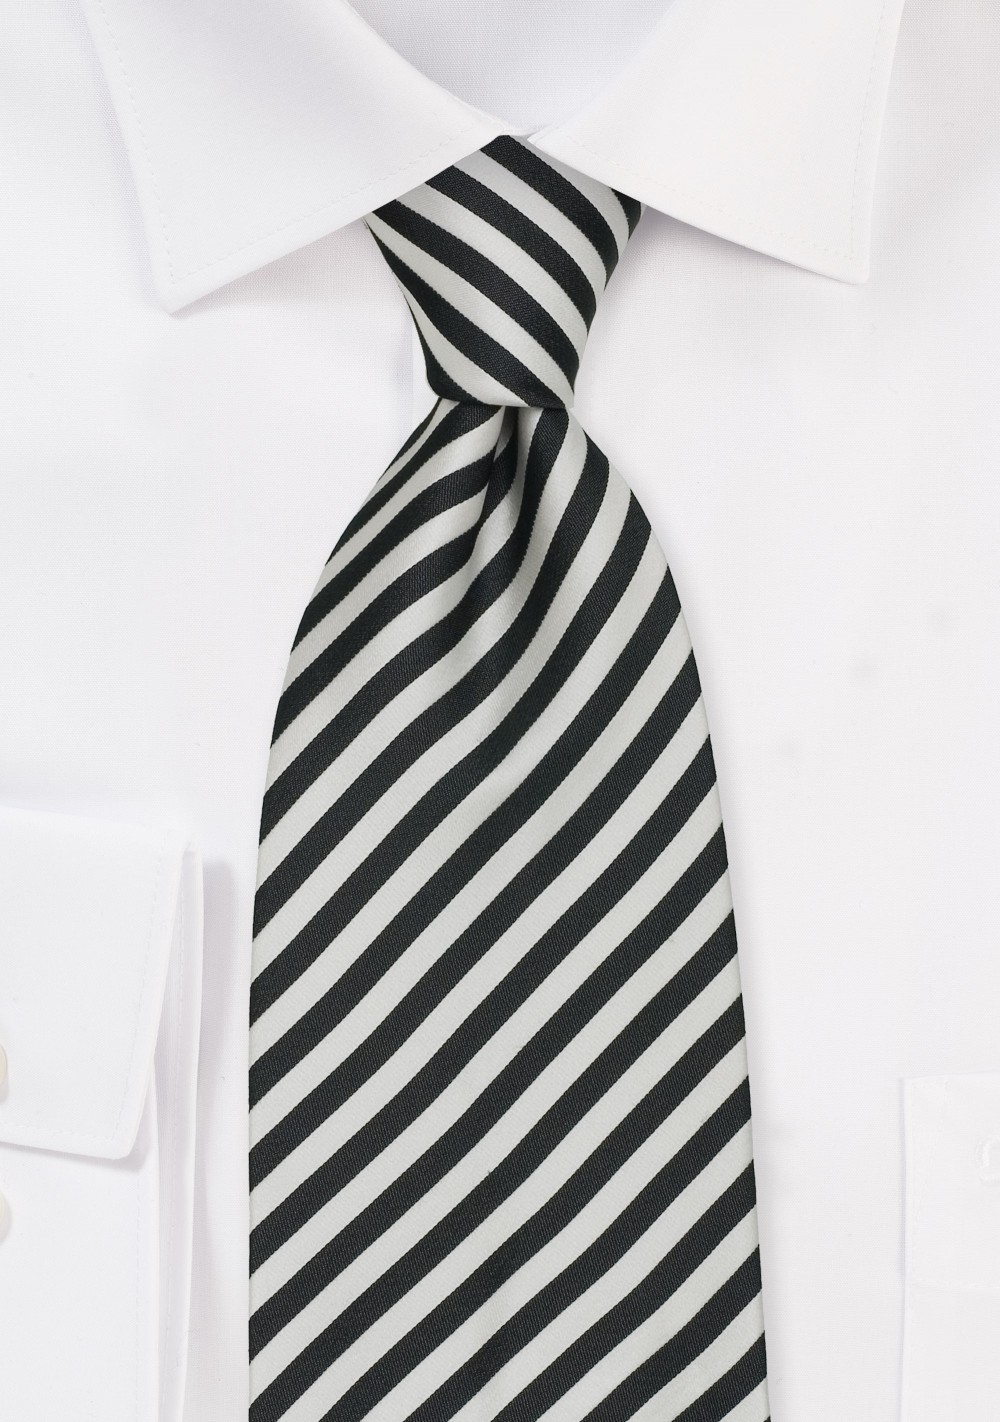 Striped Tie in Charcoal-Gray and White